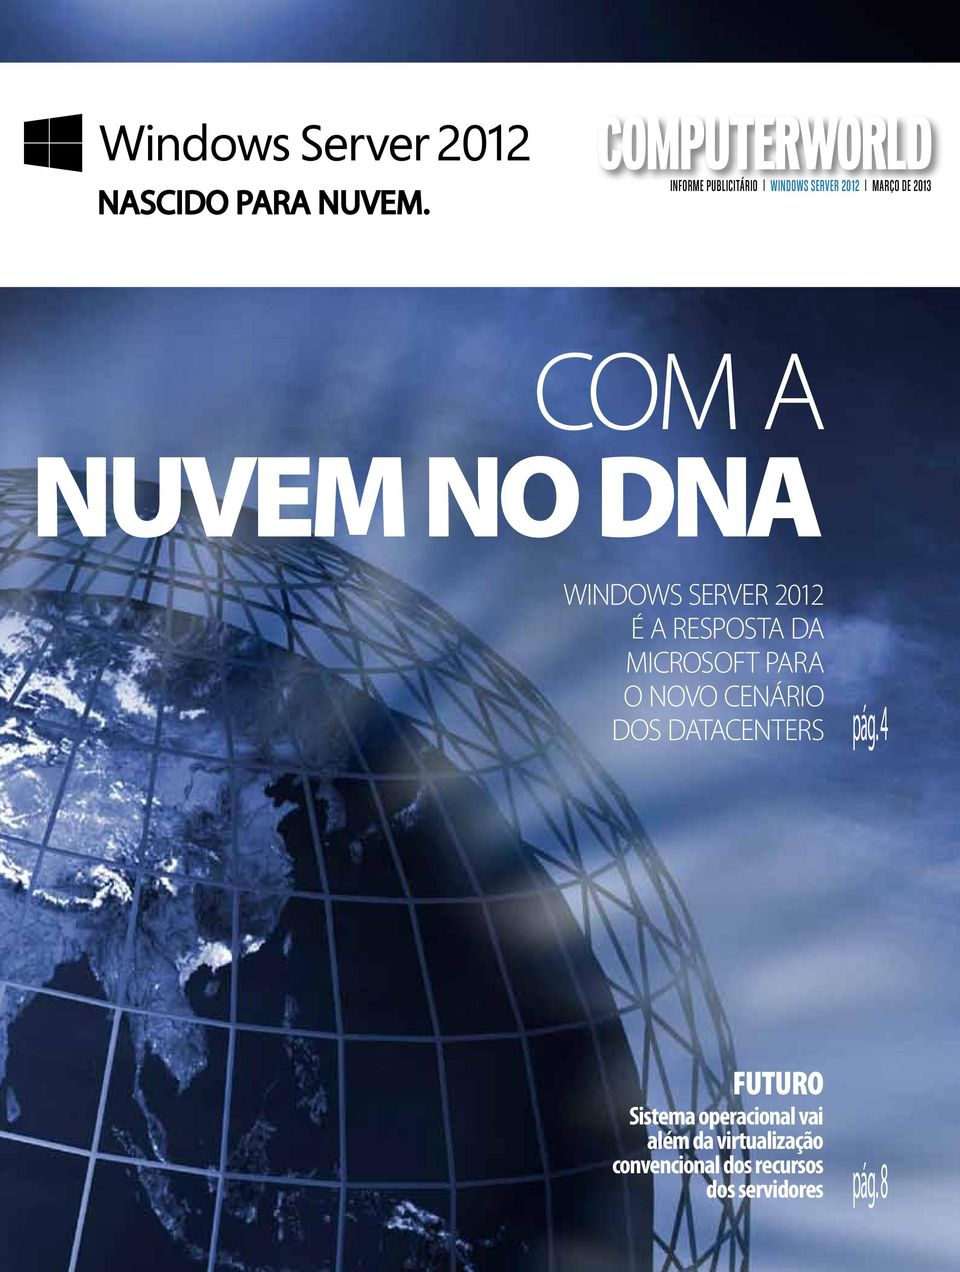 DNA WINDOWS SERVER 2012 É A RESPOSTA DA MICROSOFT PARA O NOVO CENÁRIO